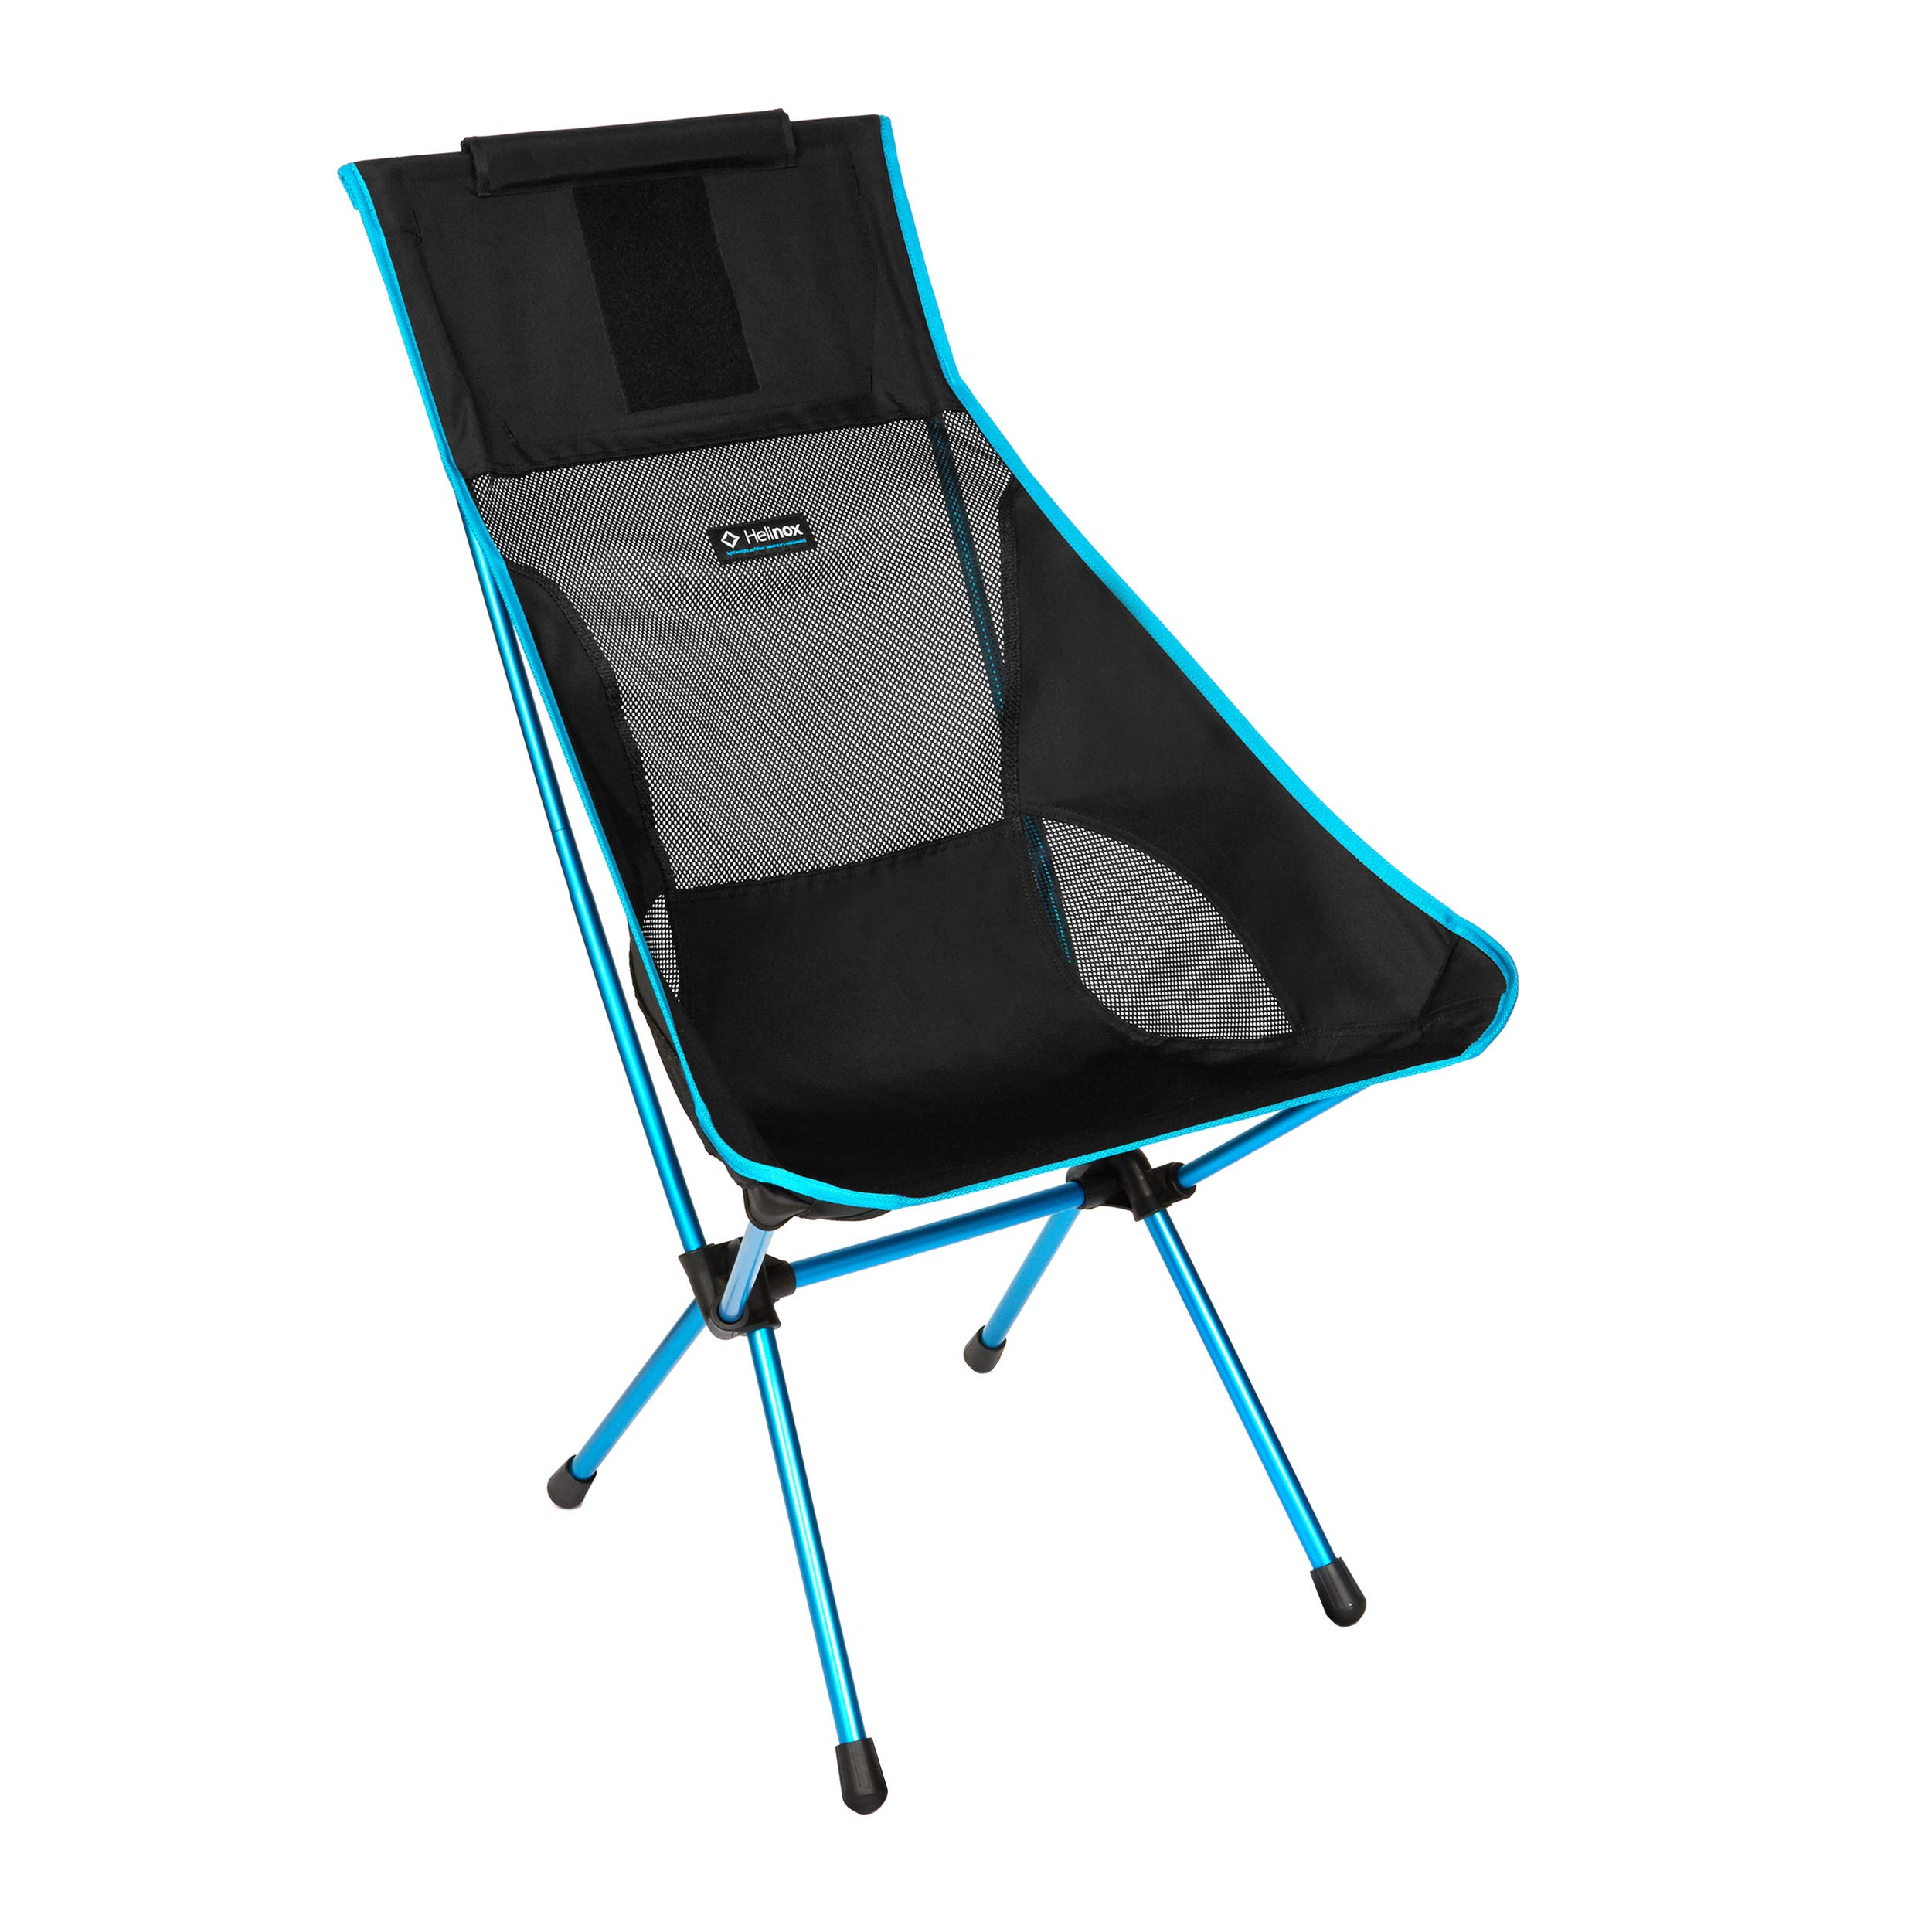 Helinox Sunset Chair Lightweight, High-Back, Compact, Collapsible Camping Chair, Black